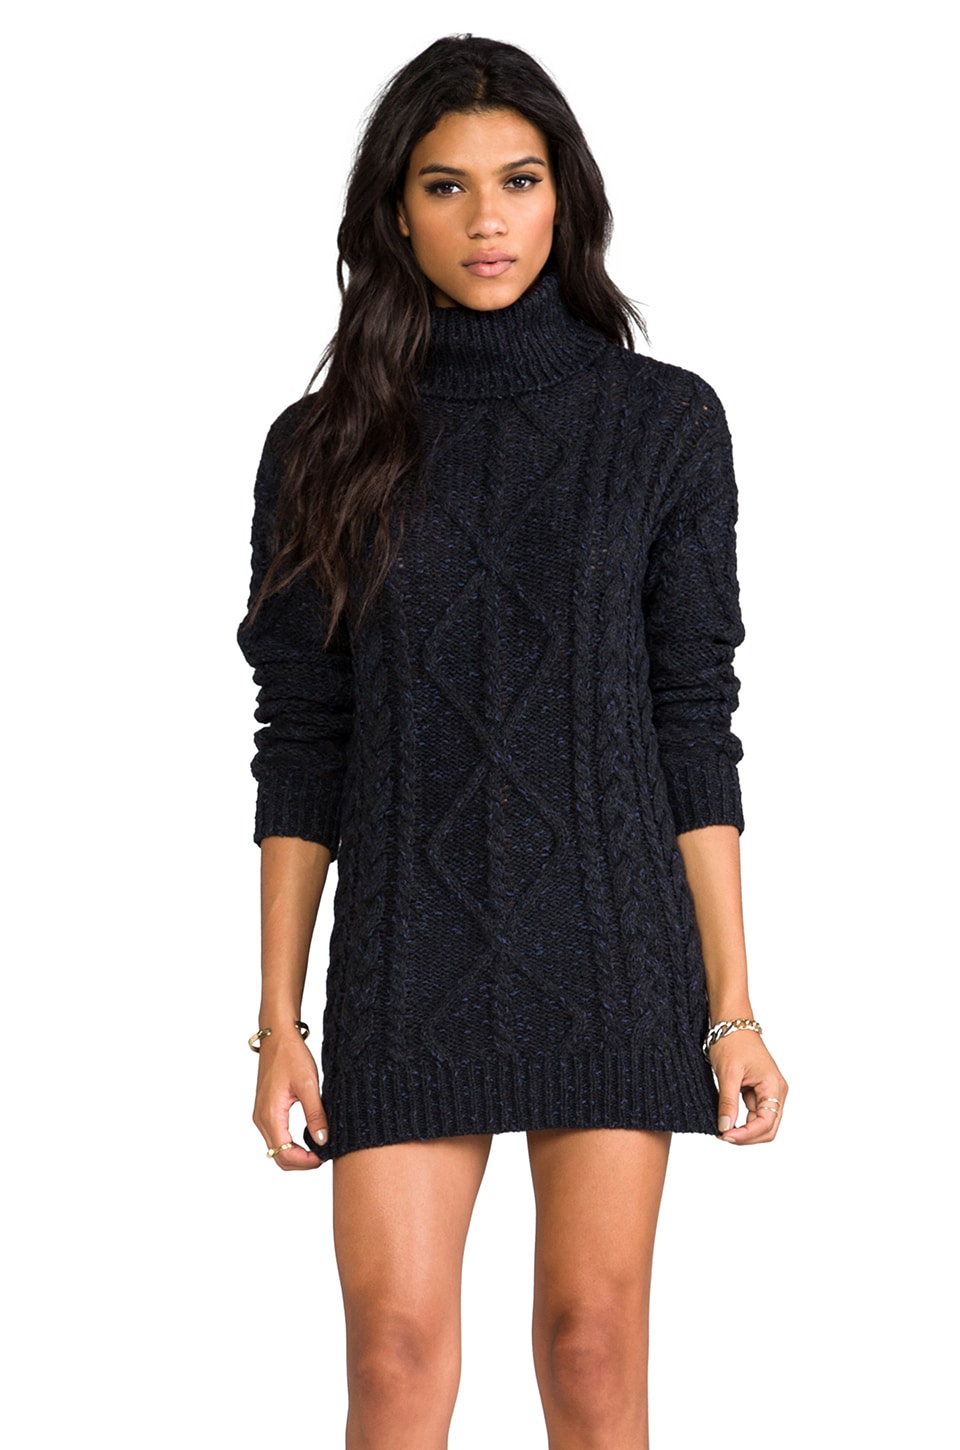 Halston Heritage Turtle Neck Chunky Sweater in Black/Navy